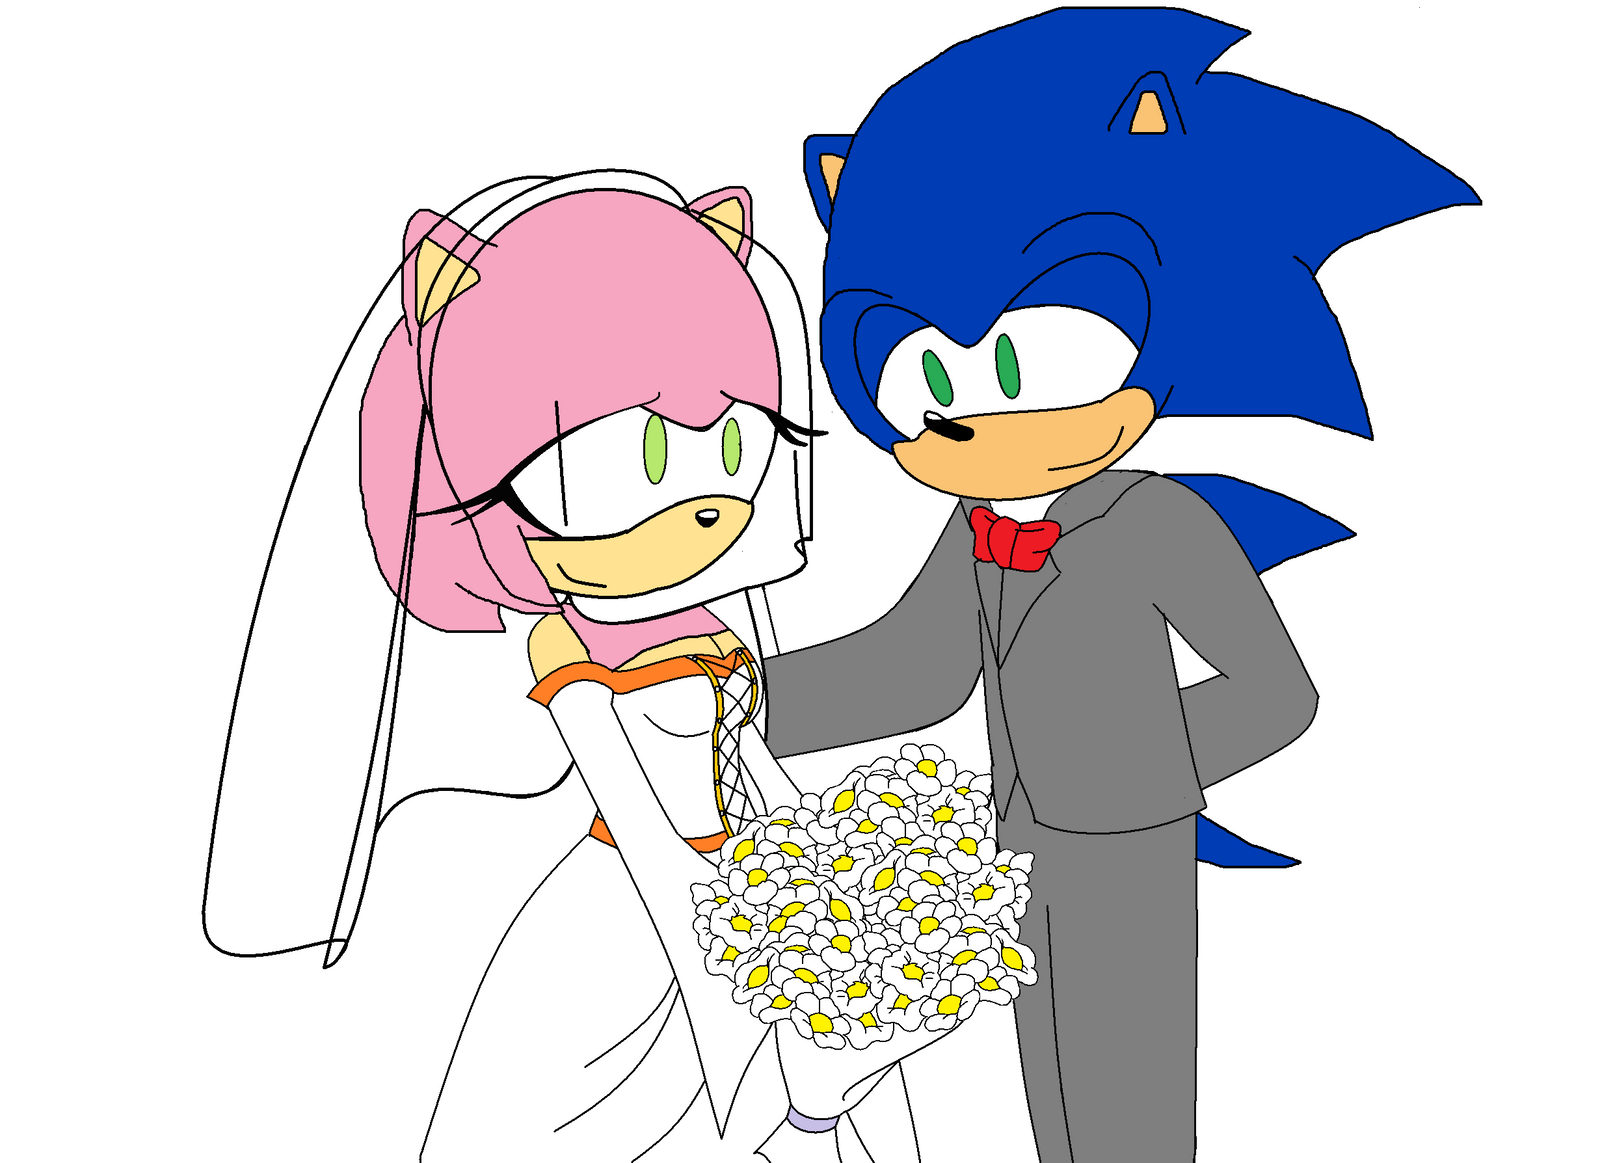 sonic and amys wedding by marcospower1996 on deviantart